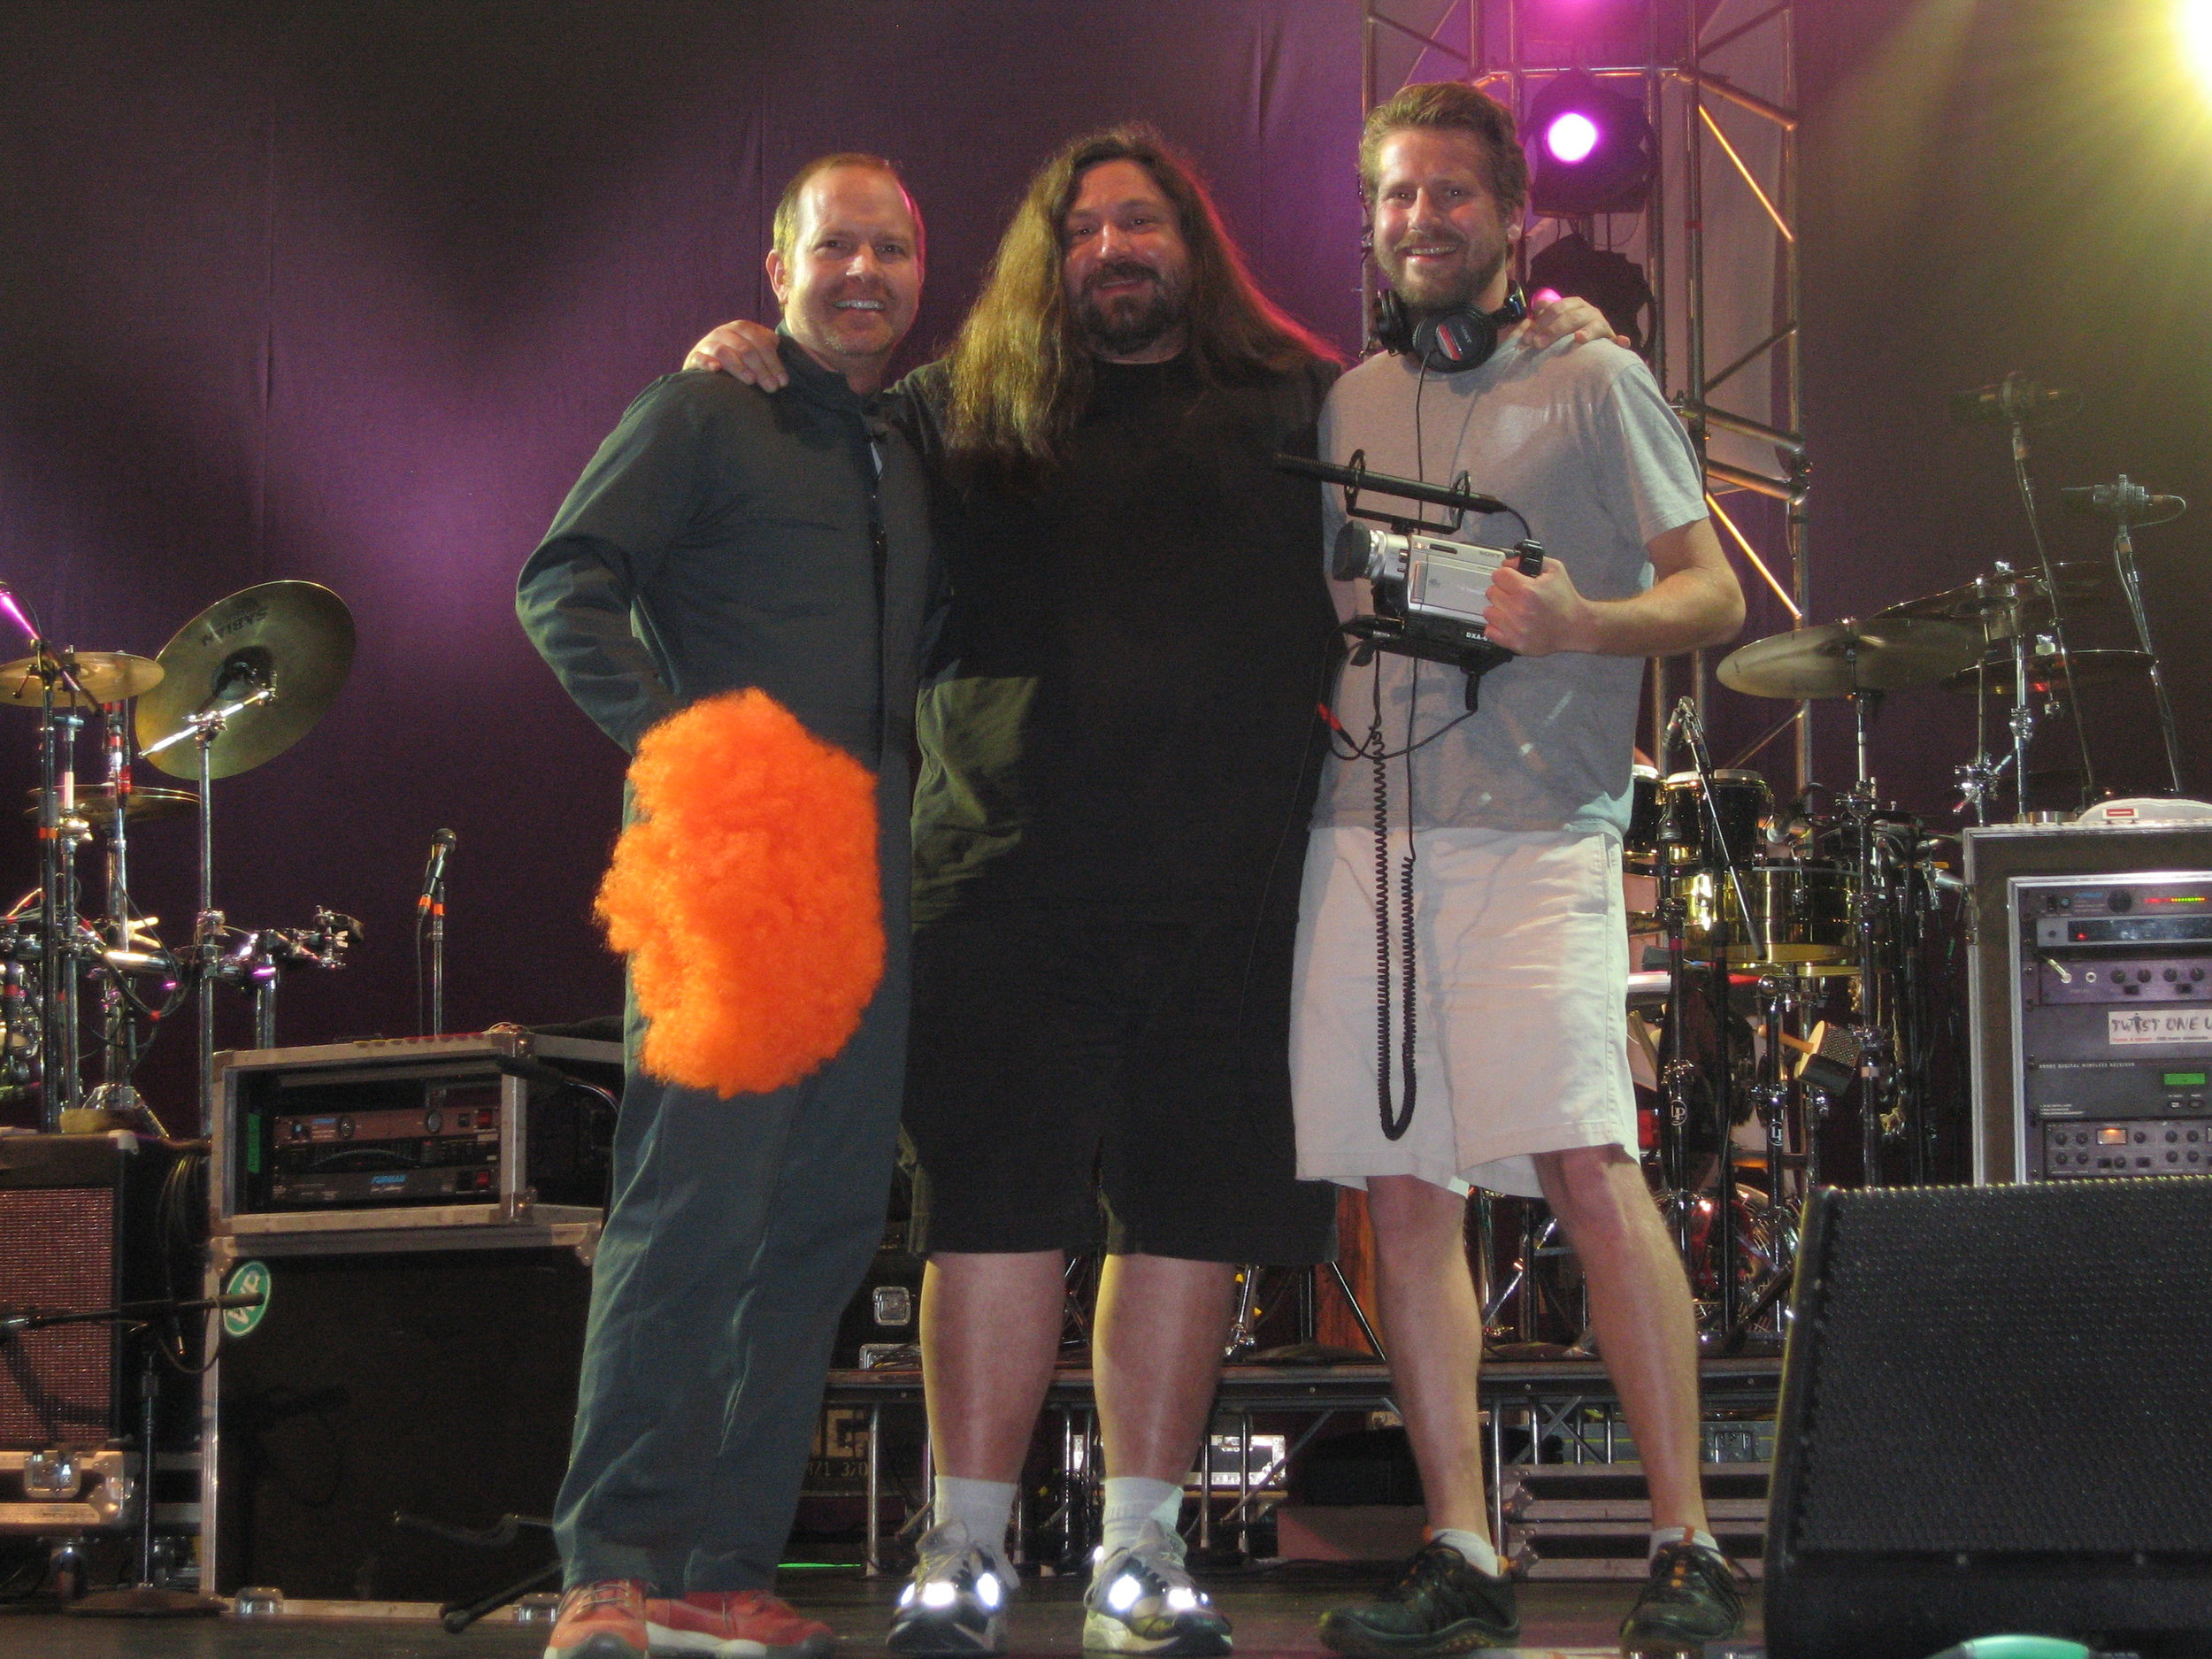 Mike and Patrick Henry with childhood friend, Dave Schools of Widespread Panic who happily agreed to be  Kicked in the Nuts .